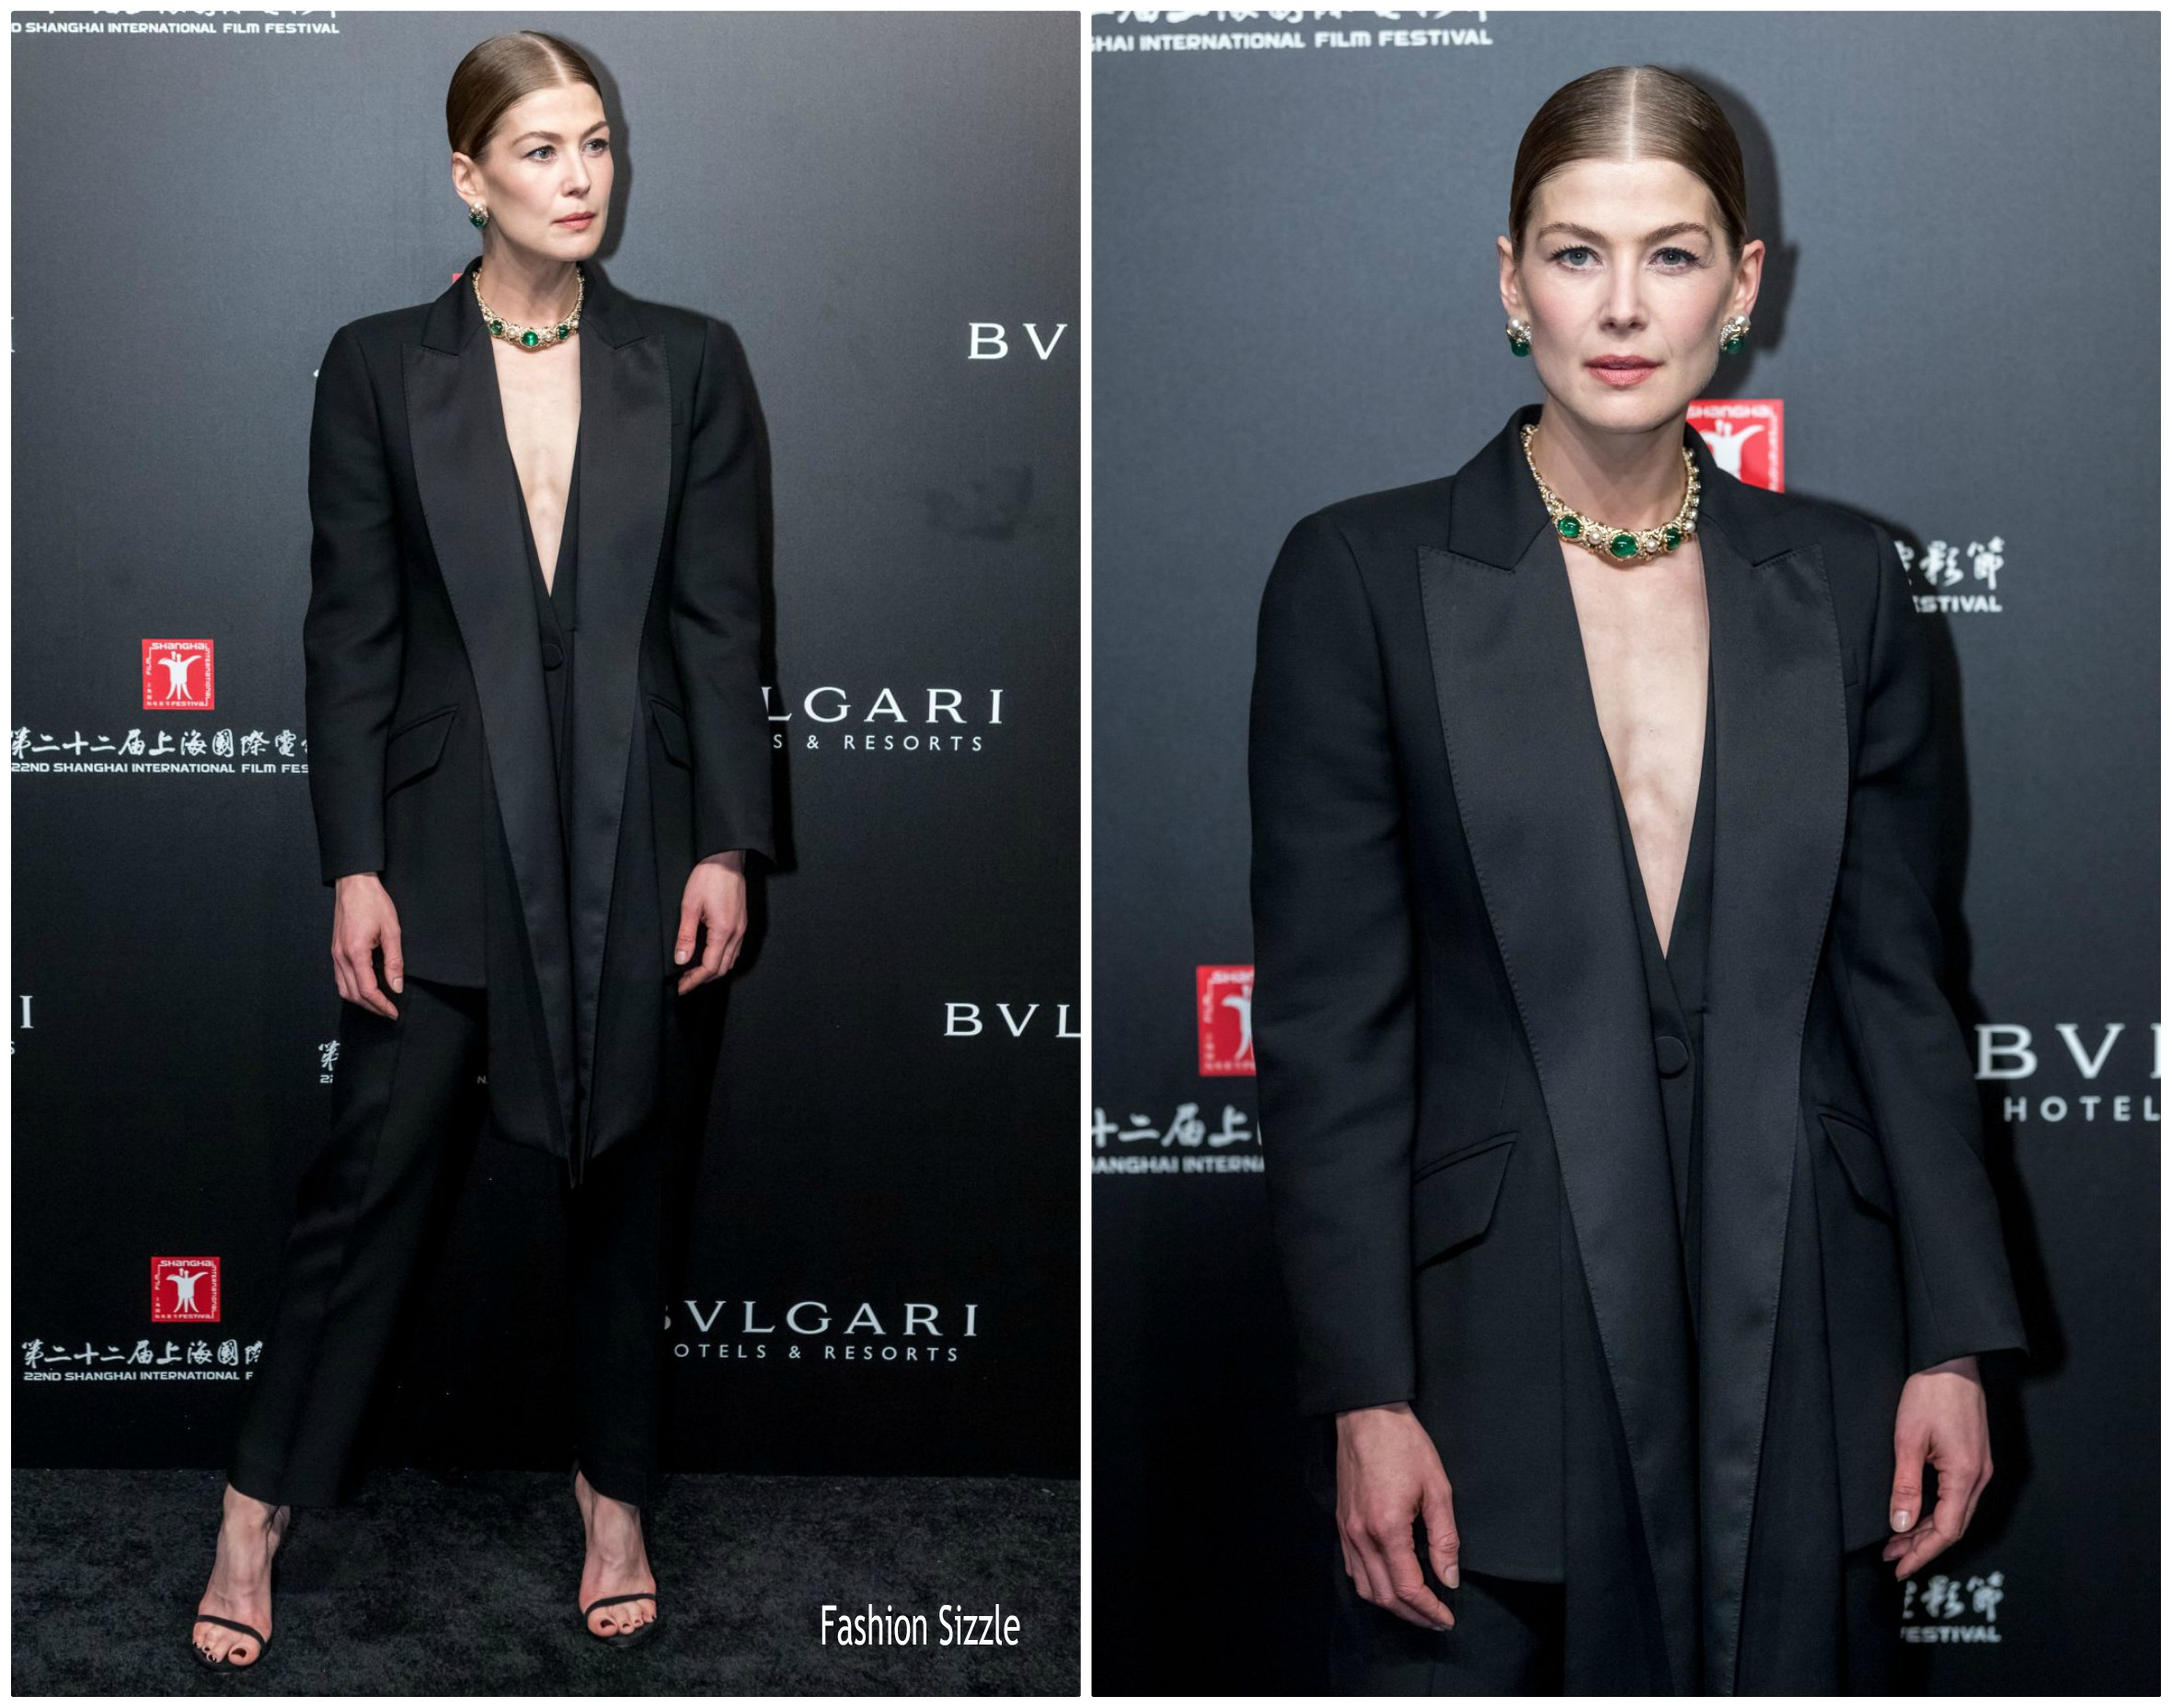 rosamund-pike-on-alexander-mcqueen-bvlgari-high-jewelry-exhibition-in-shanghai